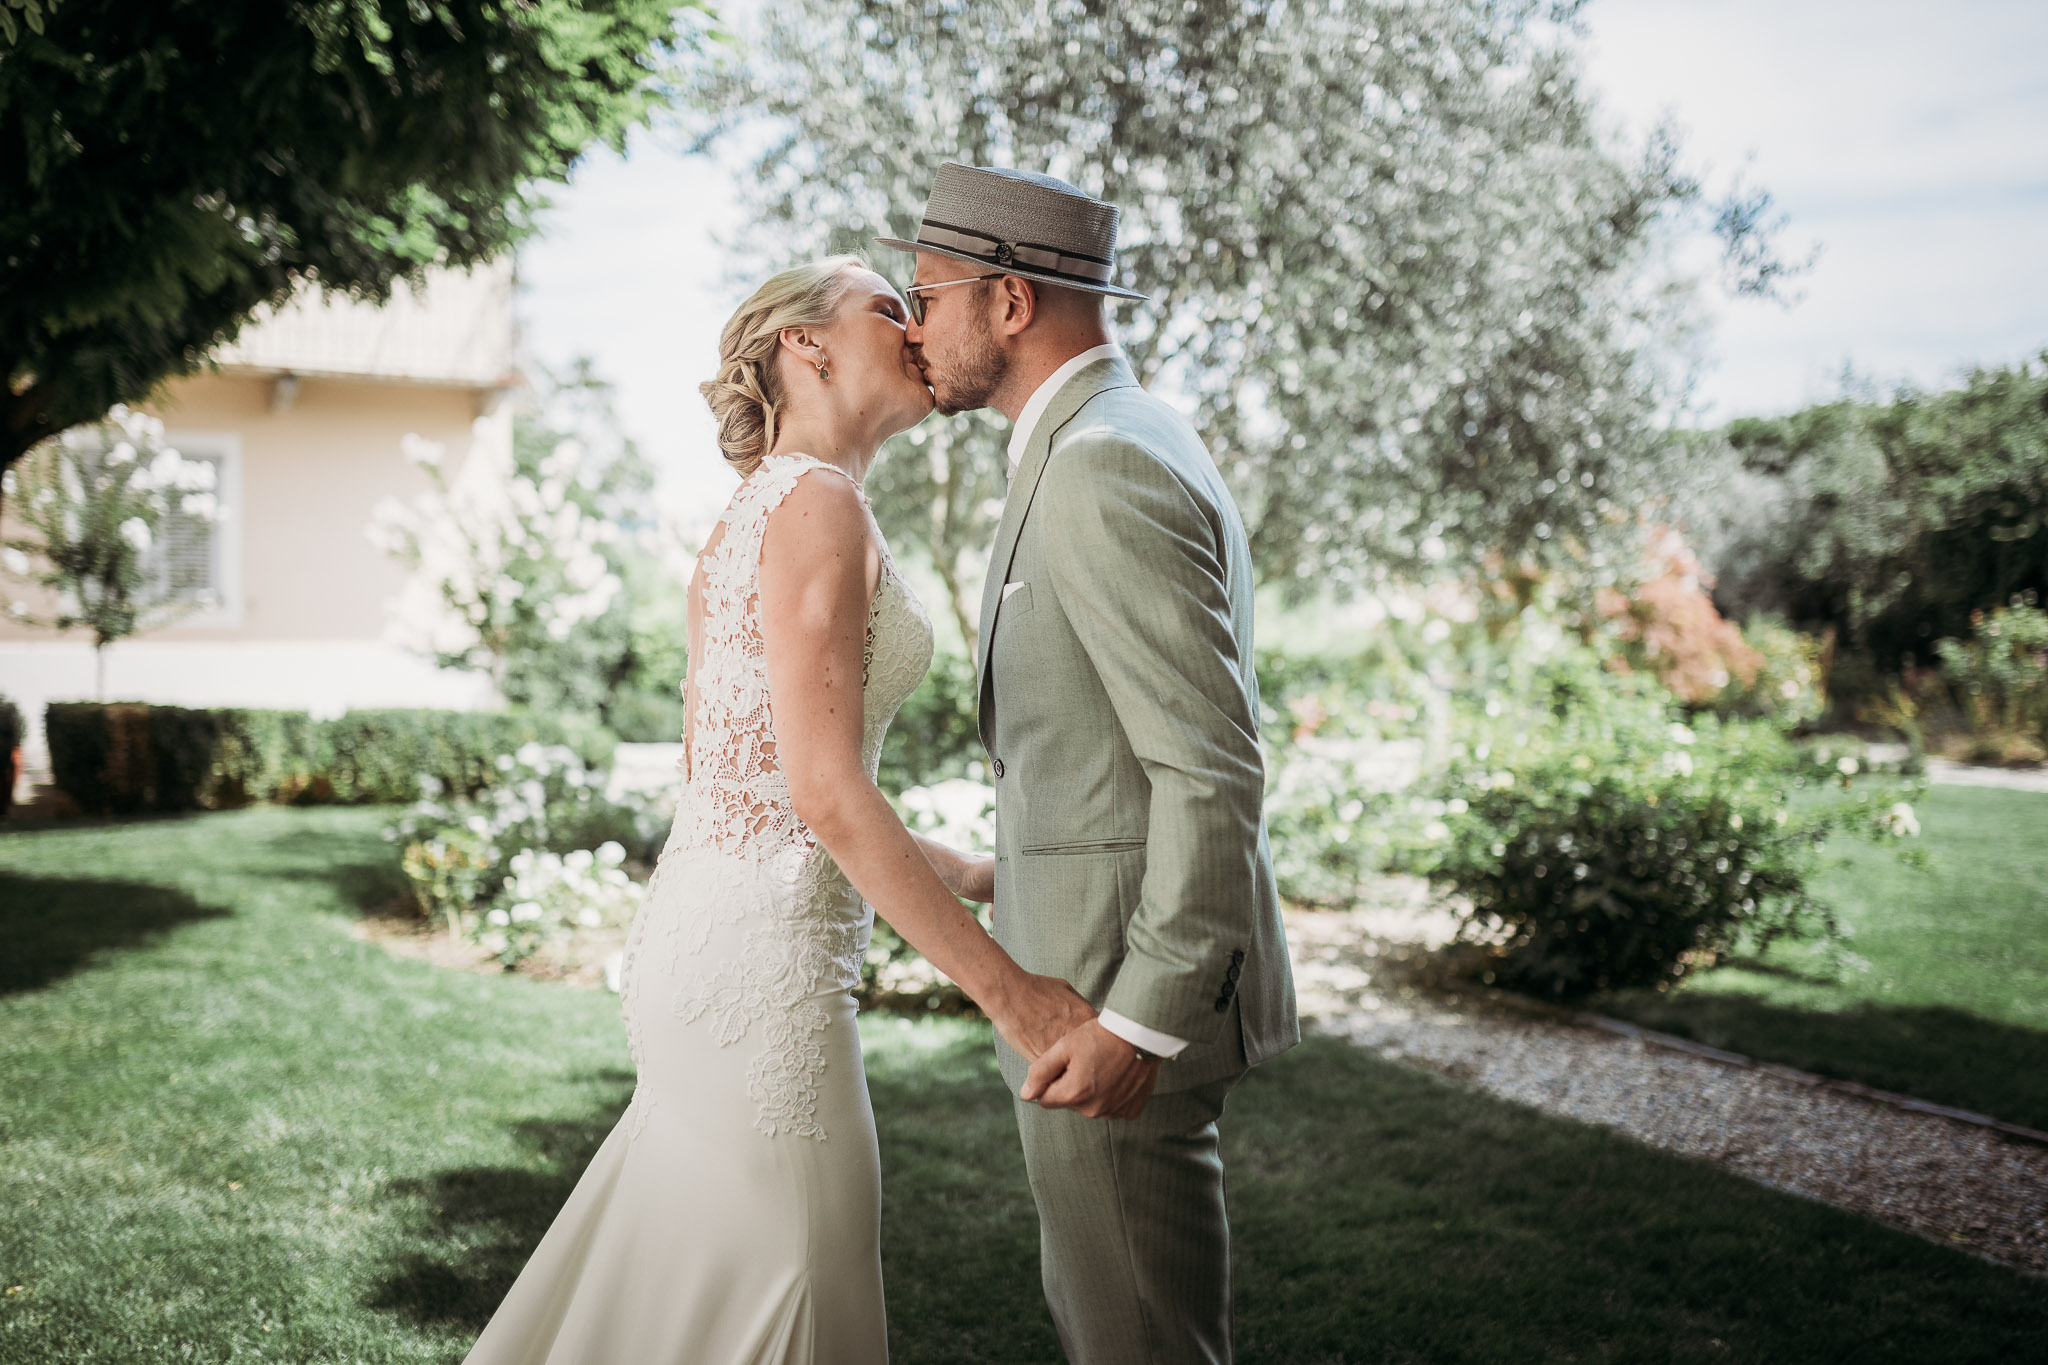 Bride and groom kissing in the courtyard during their first look at La Villa Hotel, Mombaruzzo